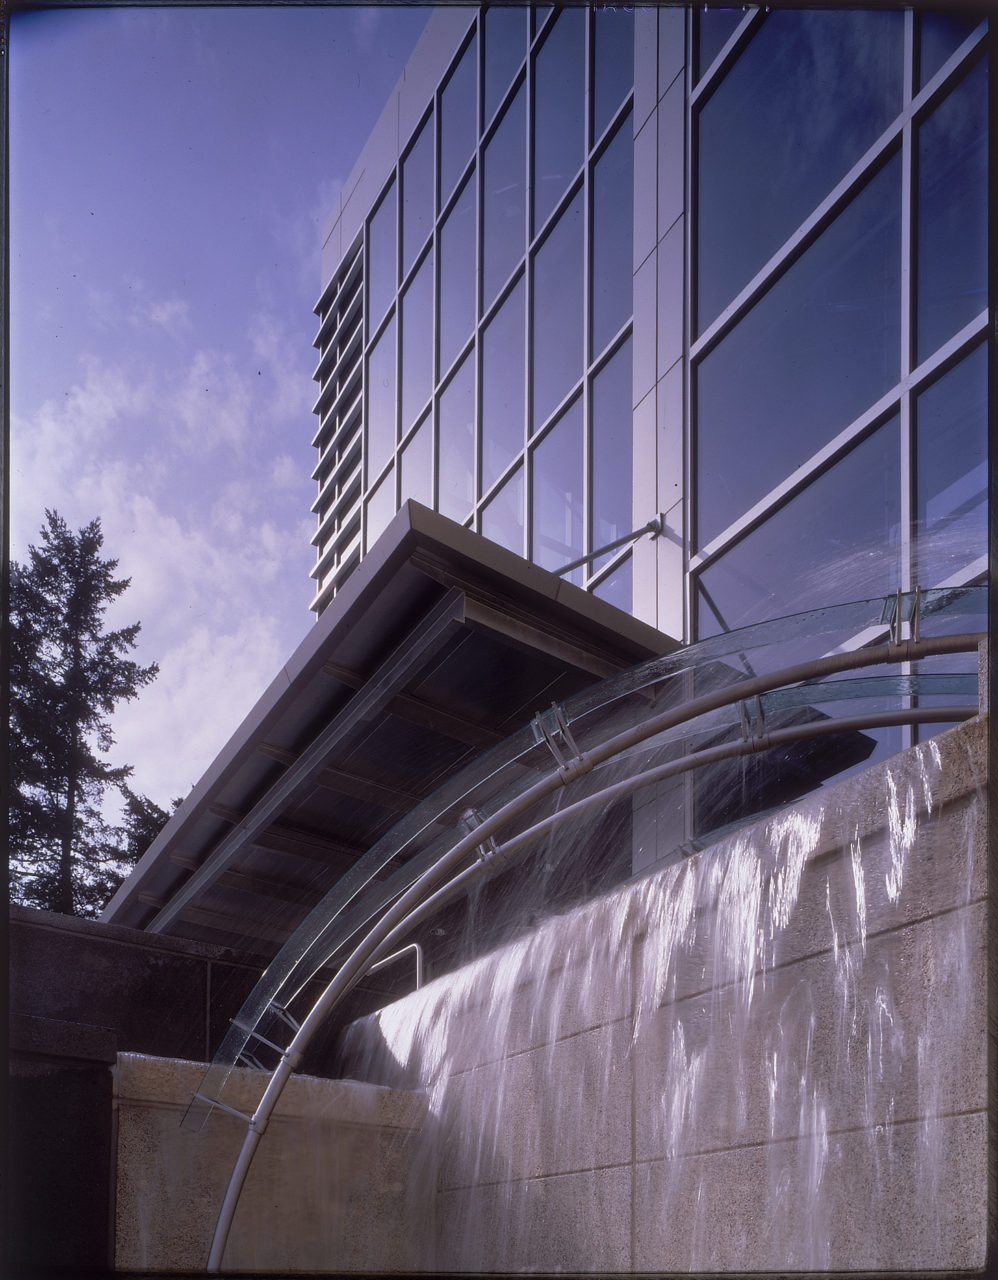 Meydenbauer Center, Bellevue, Washington / image 5